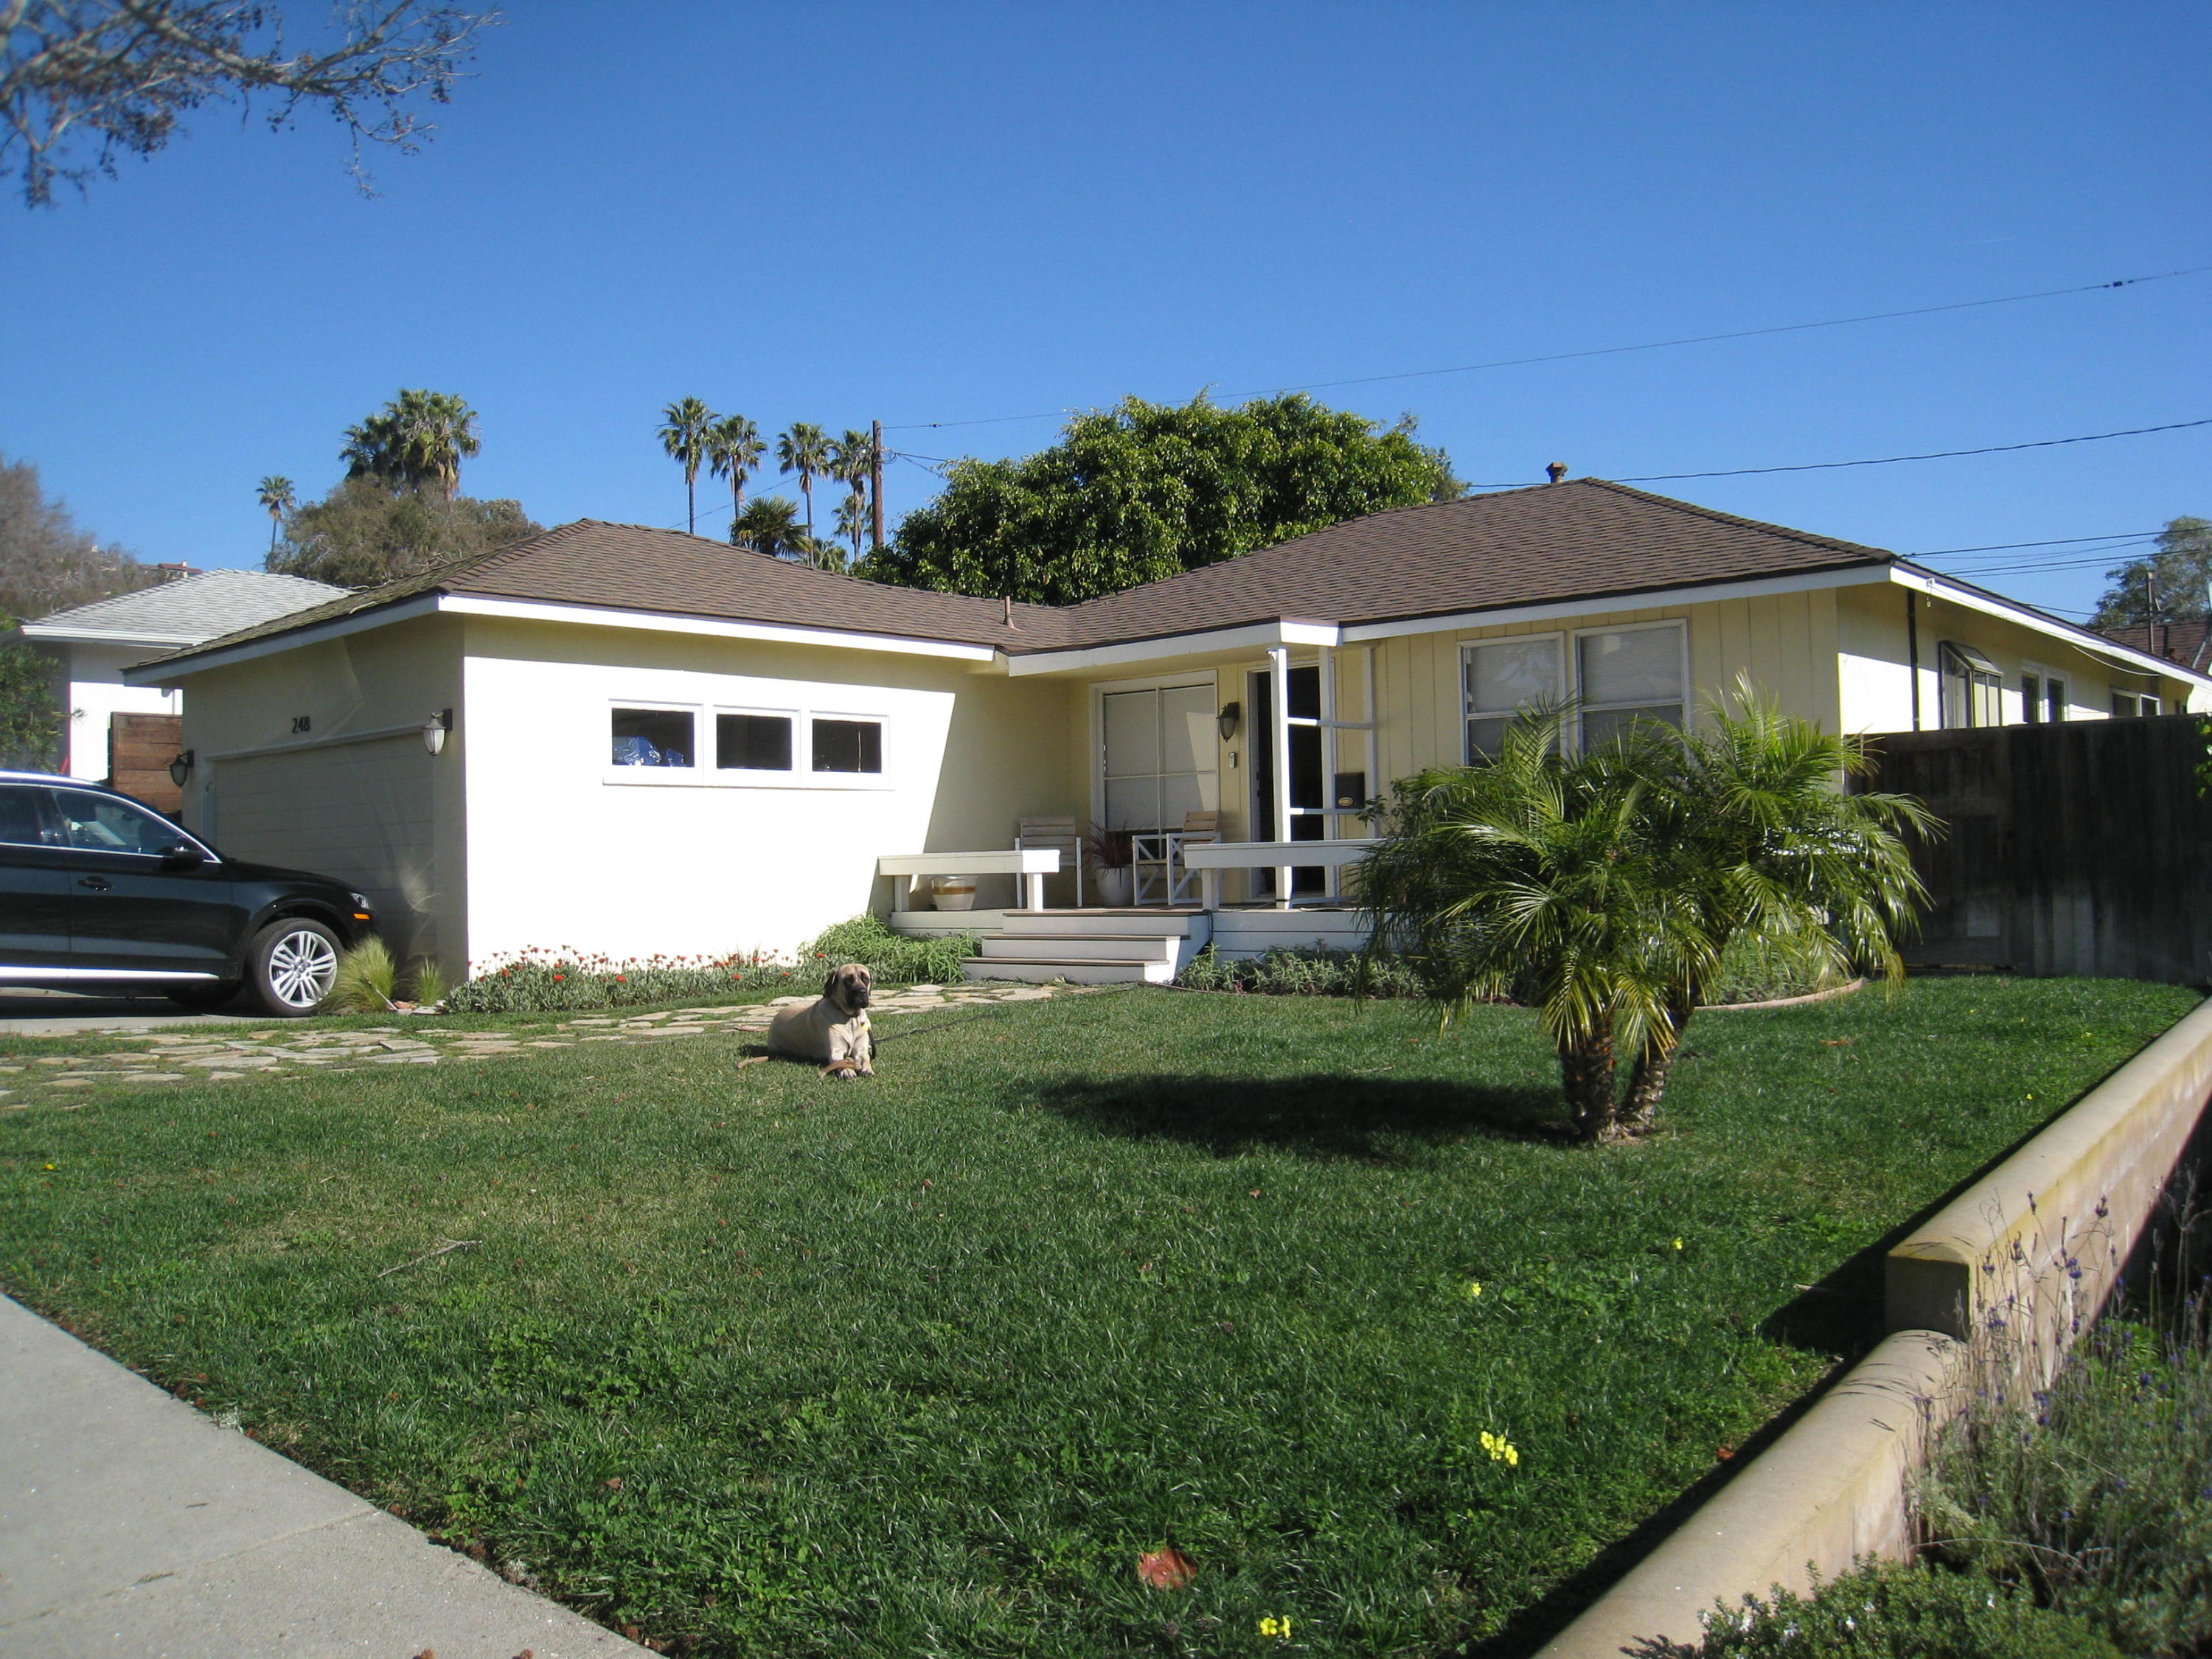 248  Los Alamos Ave, Santa Barbara, California